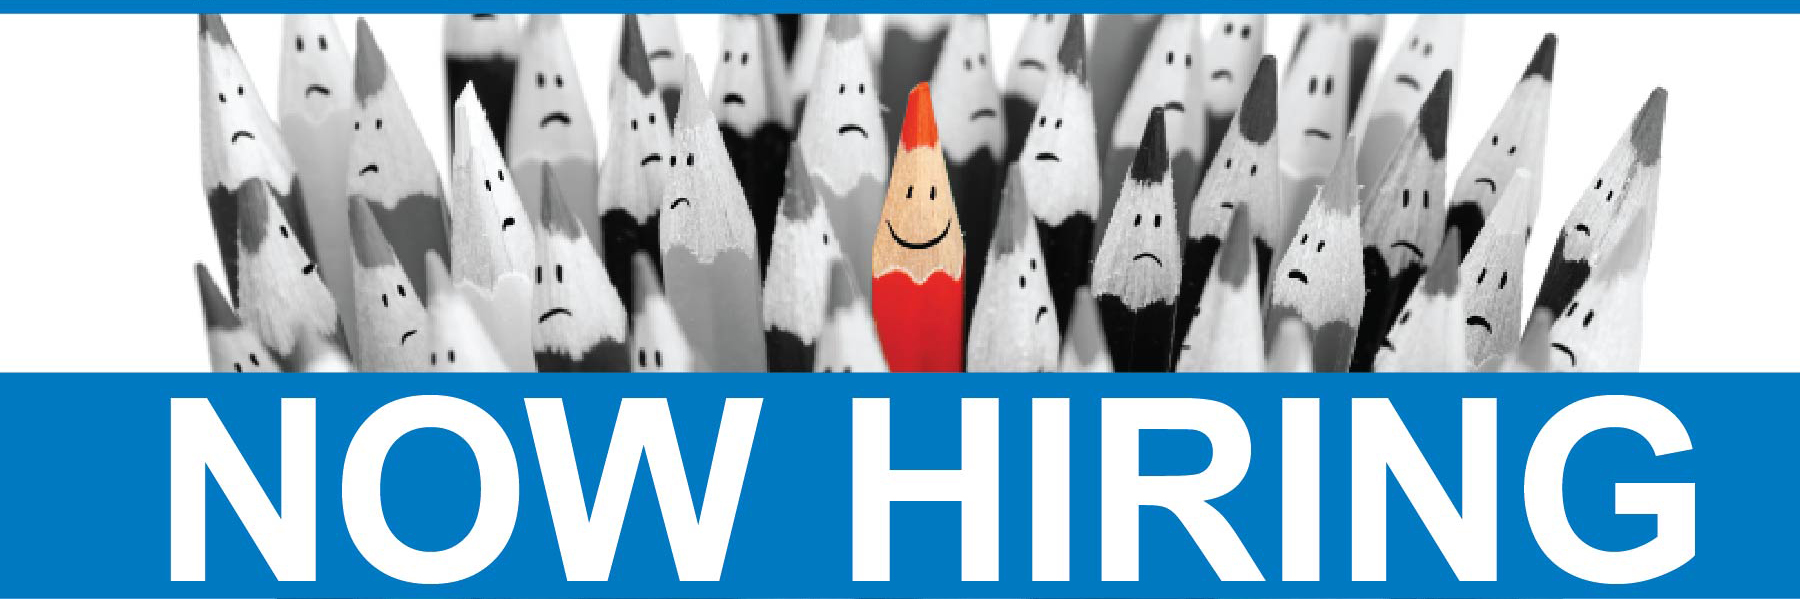 Now Hiring [group of gray pencils with one red pencil]